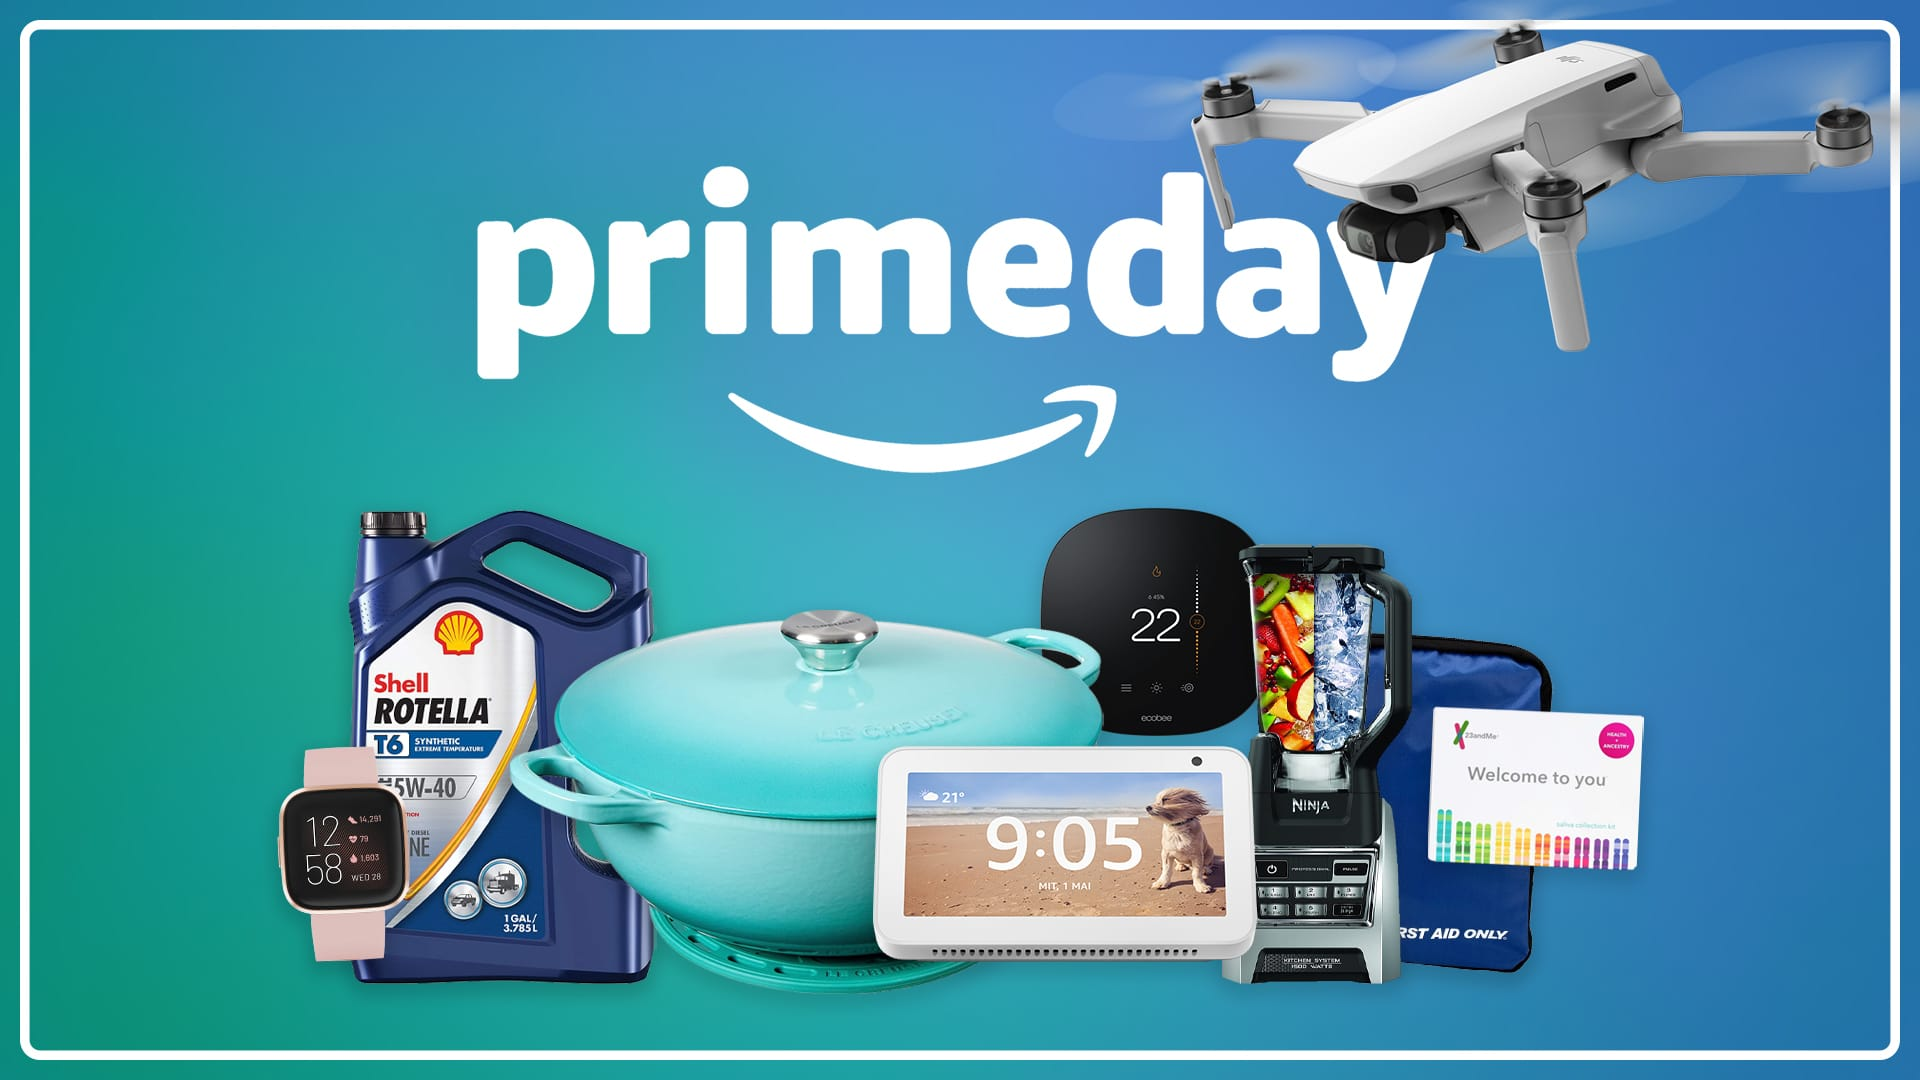 Here S About Every Deal We Can Expect From Amazon Prime Day 2020